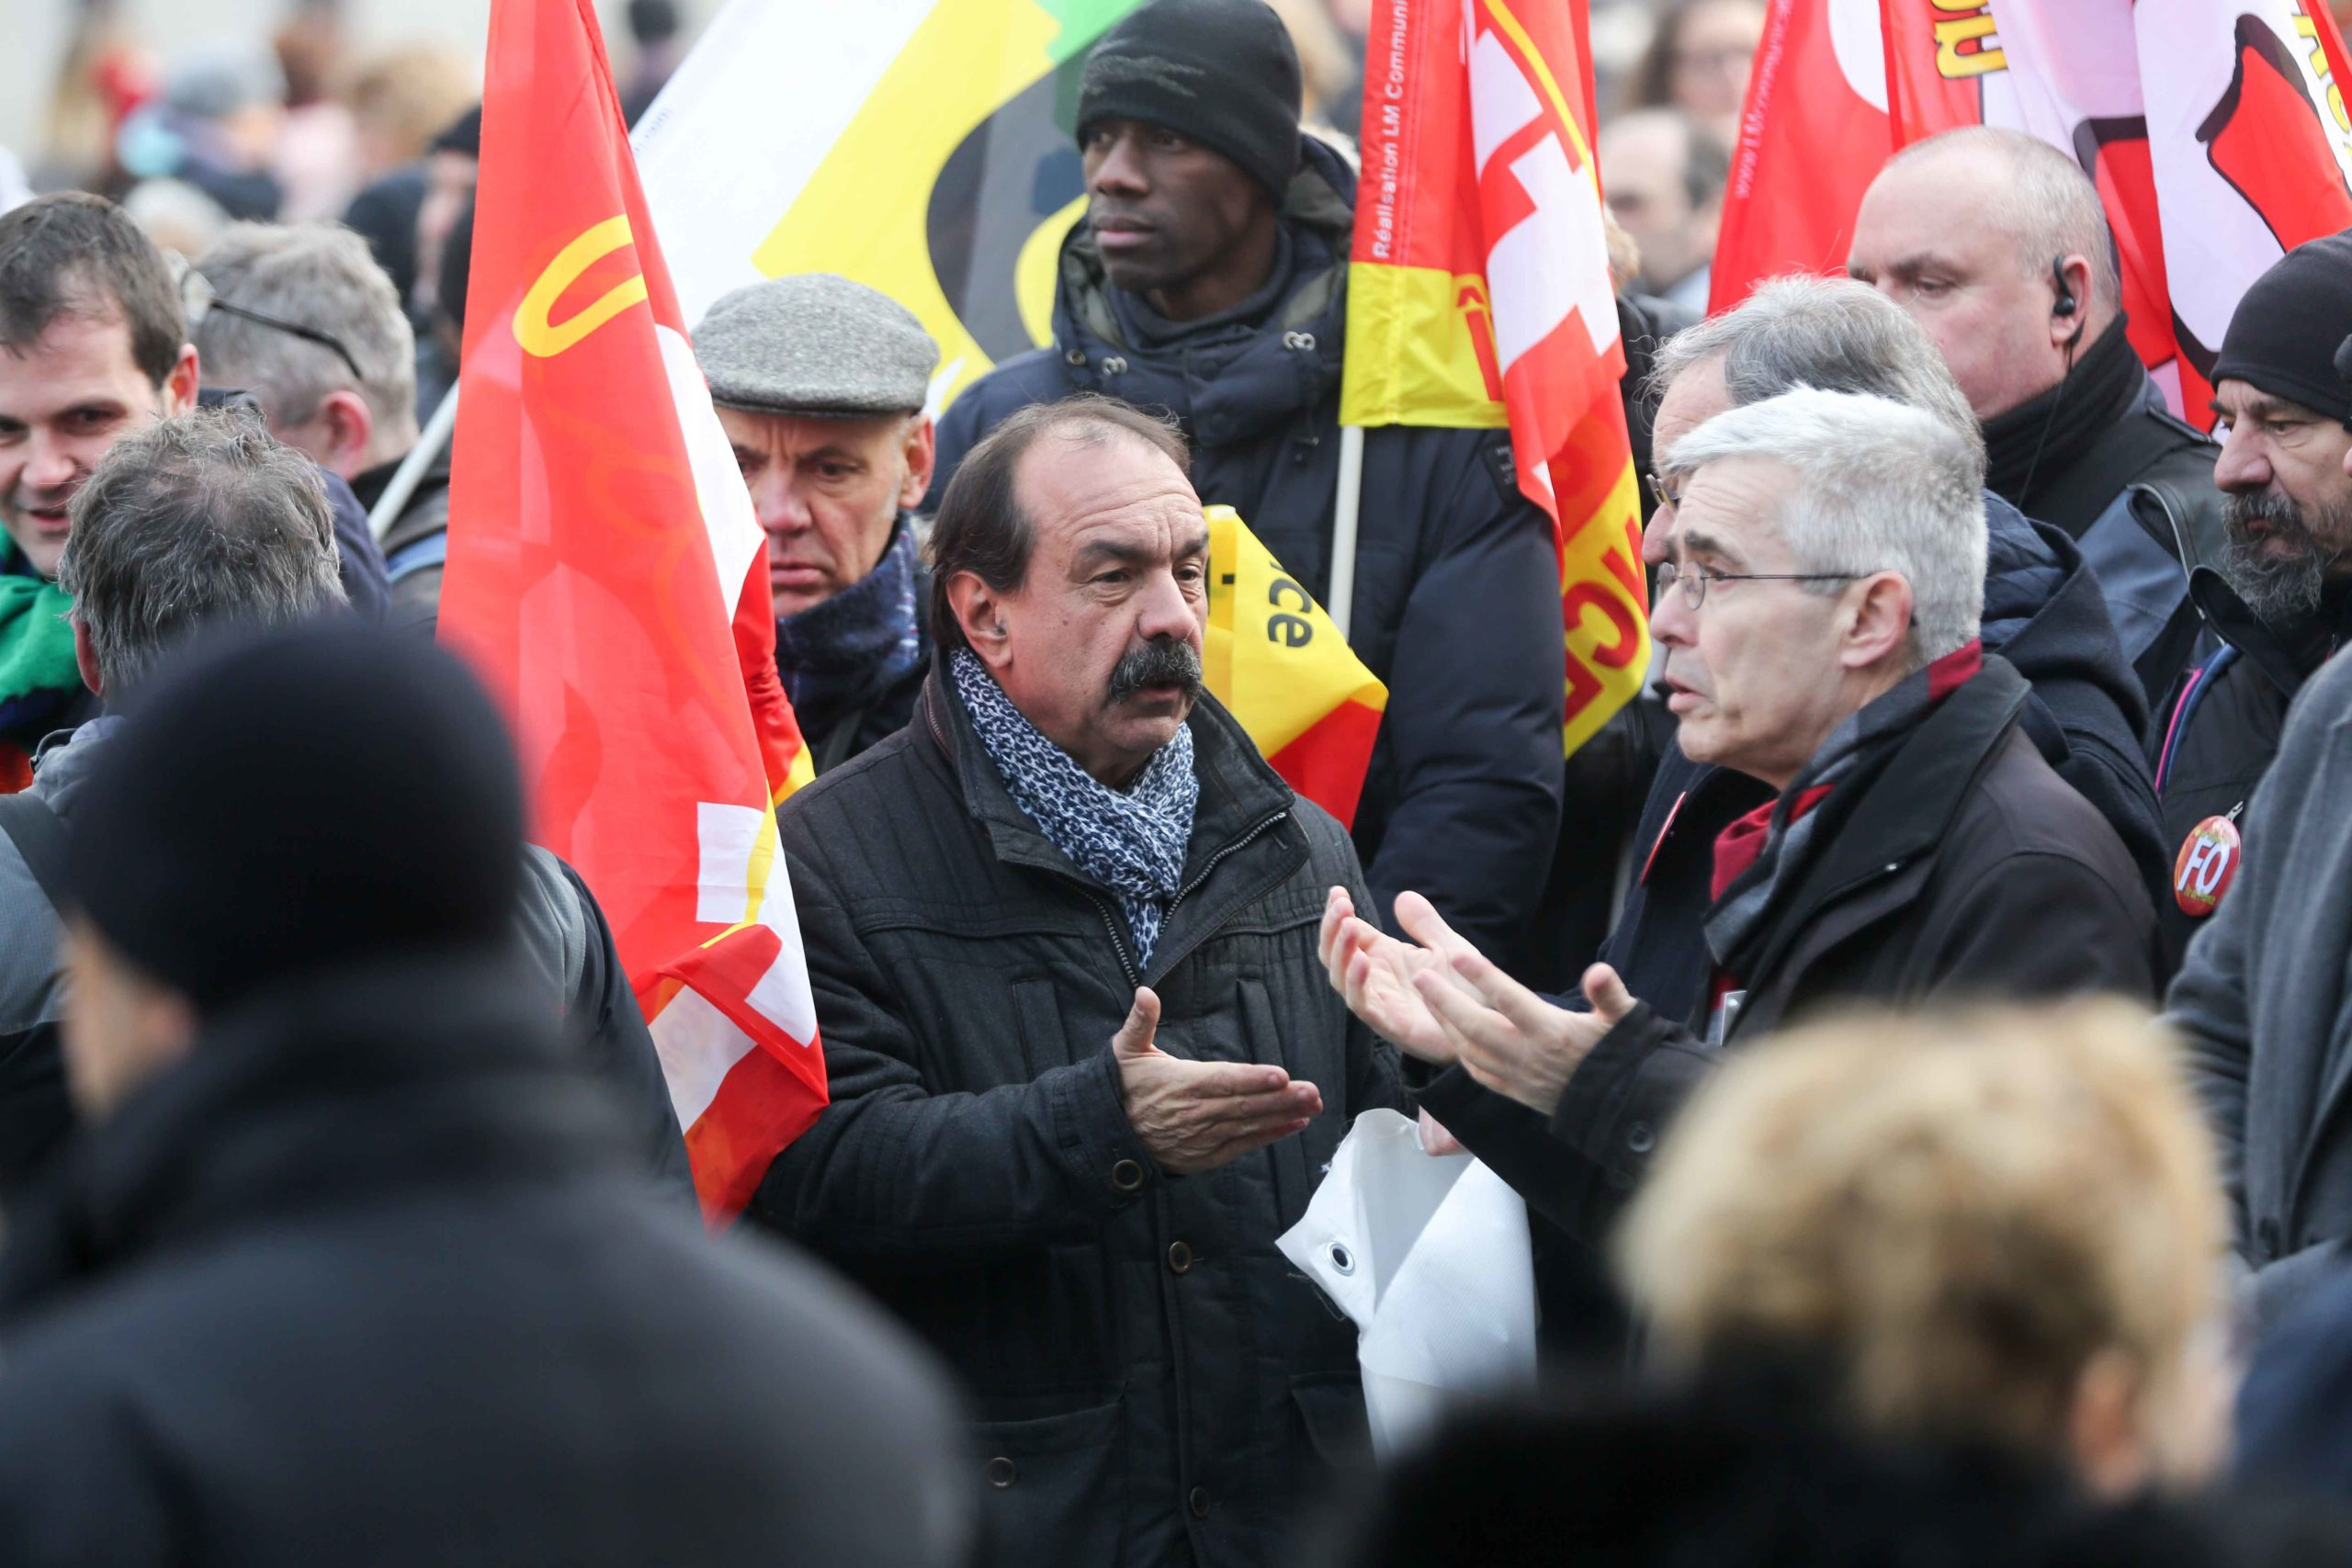 CGT union leader Philippe Martinez (C) speaks with the General secretary of French Union Force Ouvriere (FO) Yves Veyrier (R) during a demonstration in Paris on January 24, 2020 against the government pensions reform, which will be officially unveiled afte